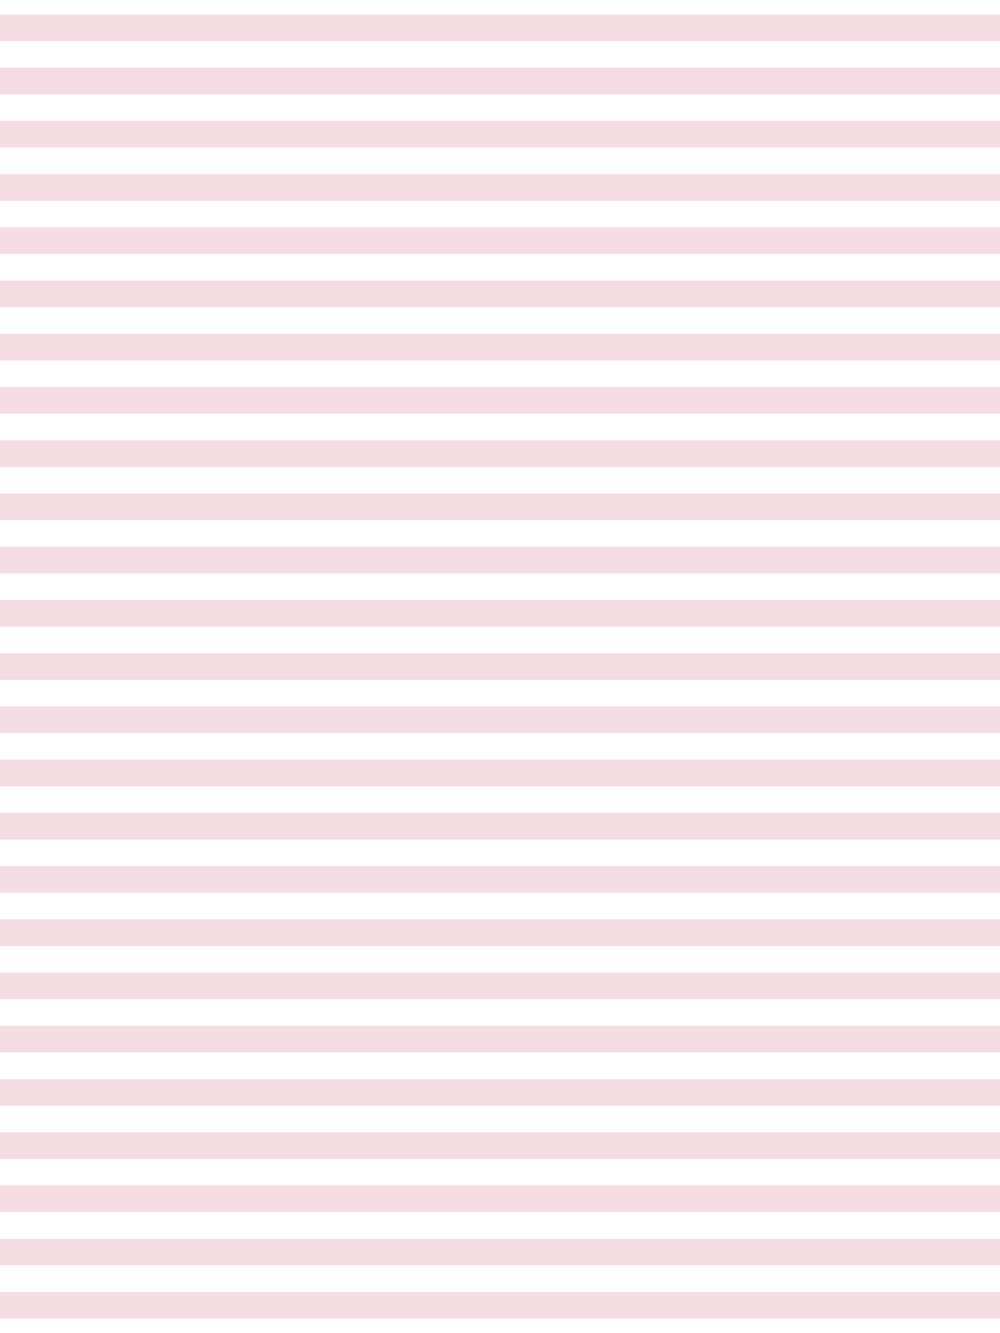 Stripes_Light+Pink_300+dpi.jpg